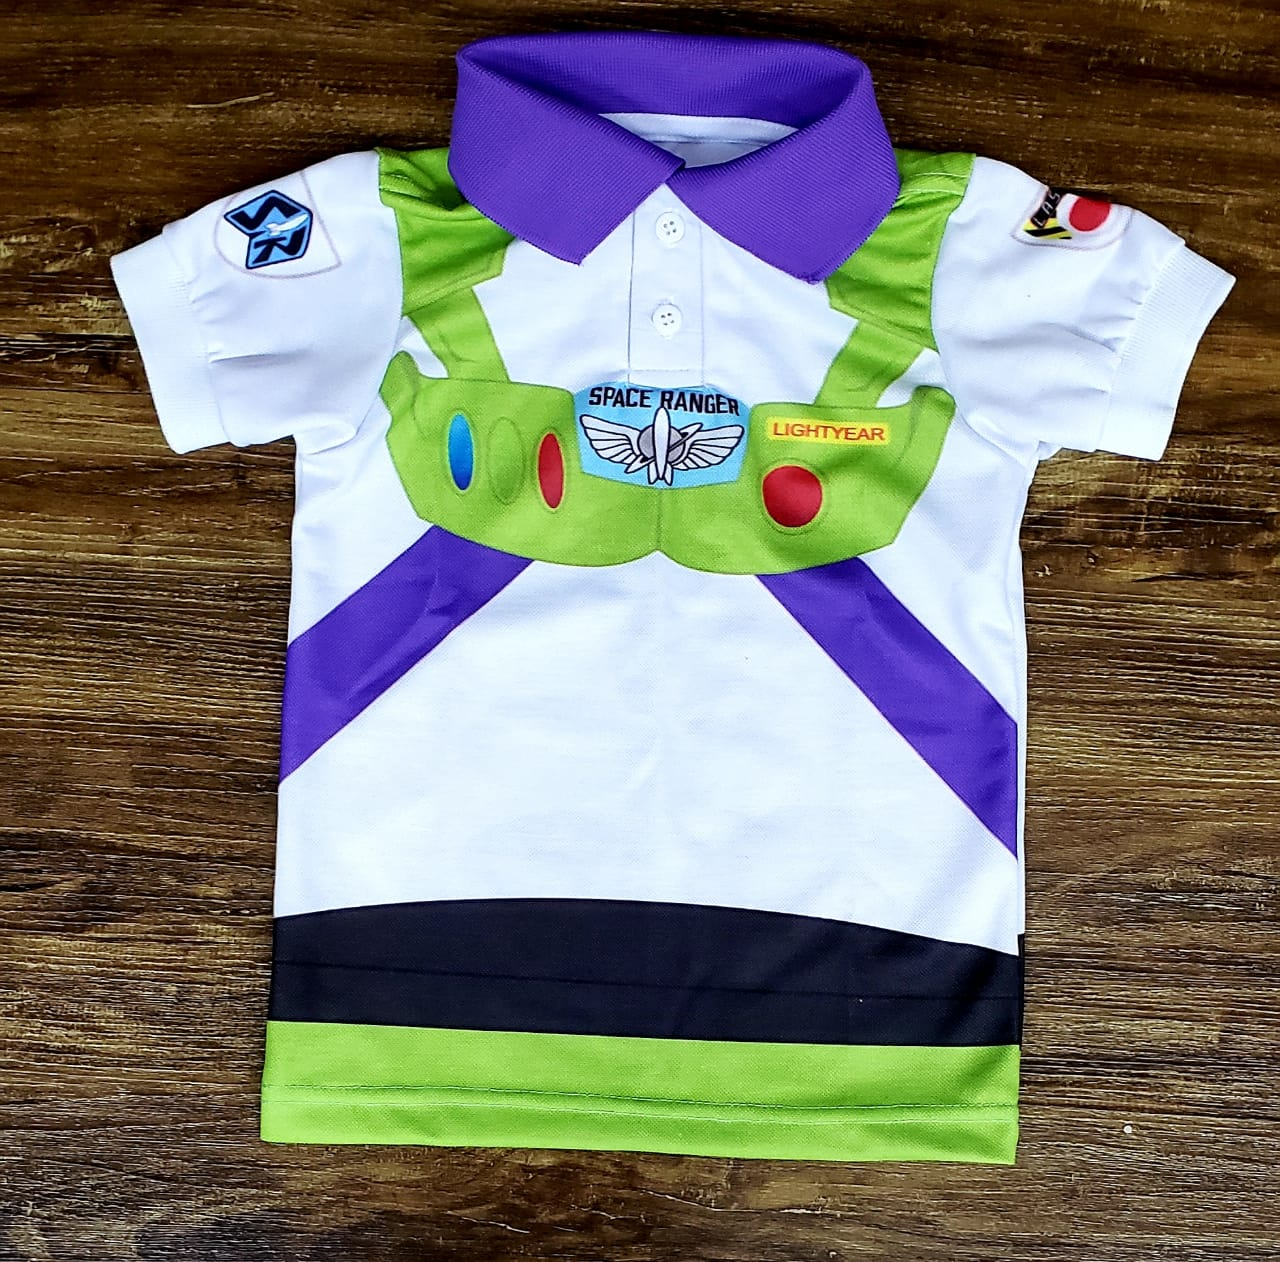 Polo Buzz Lightyear - Toy Story